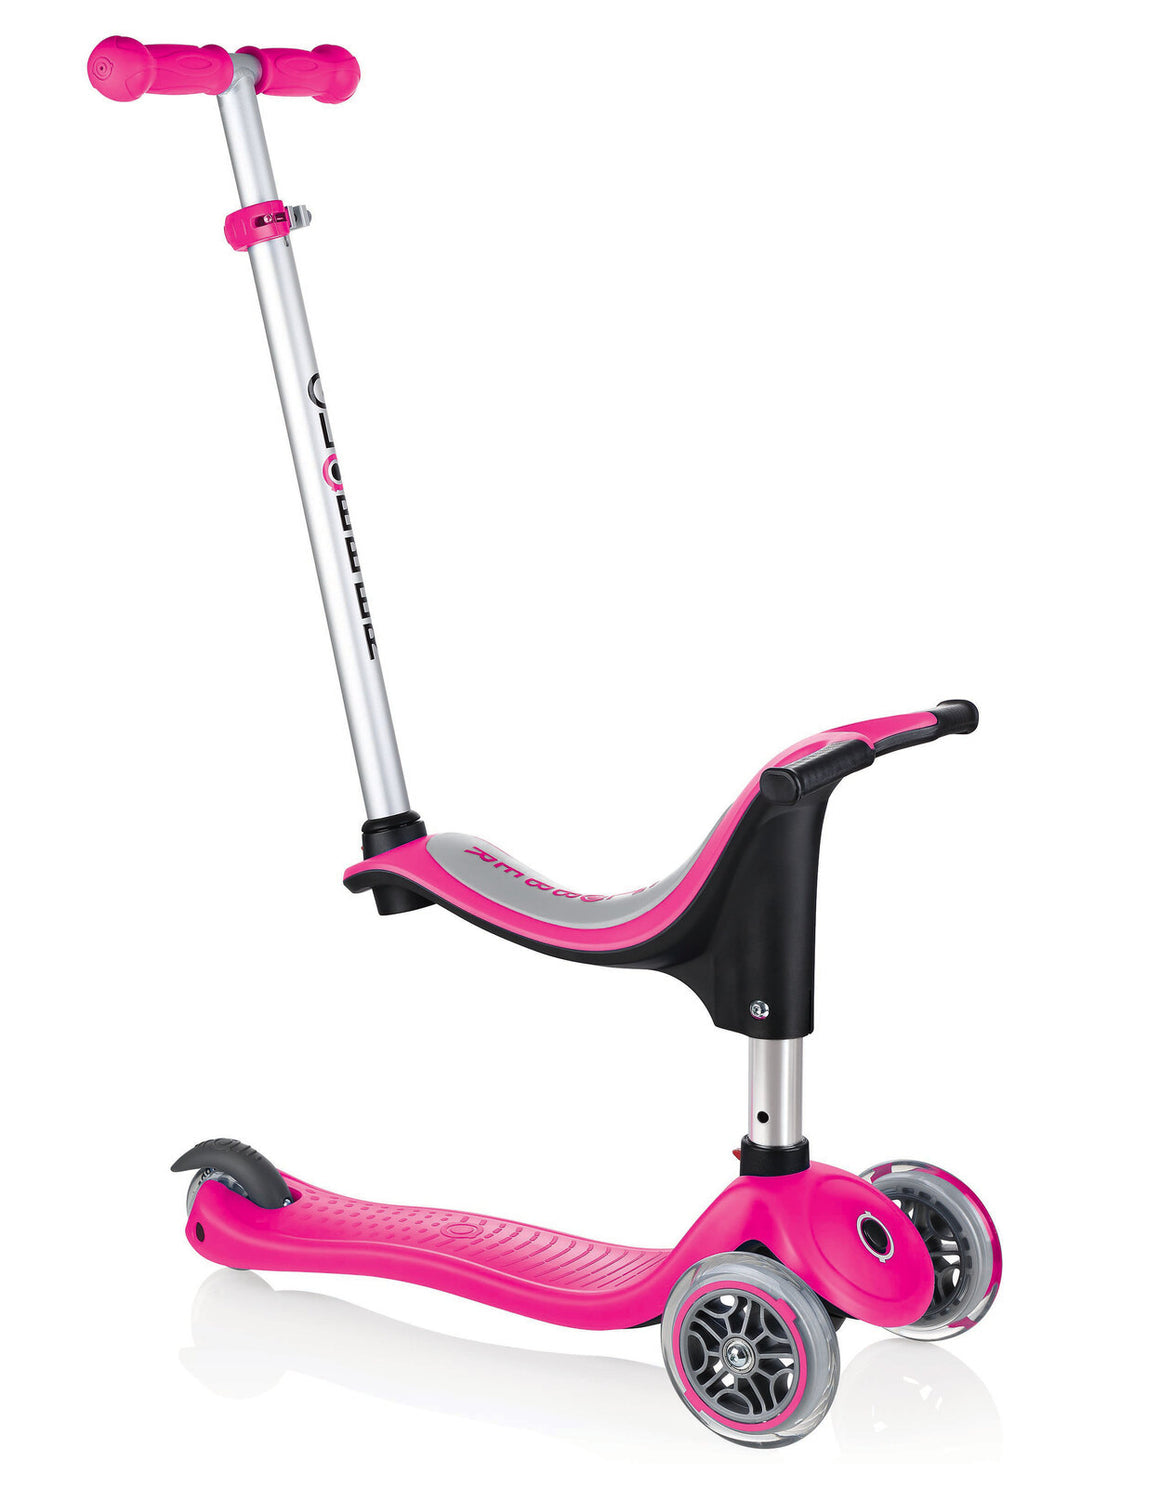 GLOBBER EVO 4 in 1 CONVERTIBLE in Pink or Blue